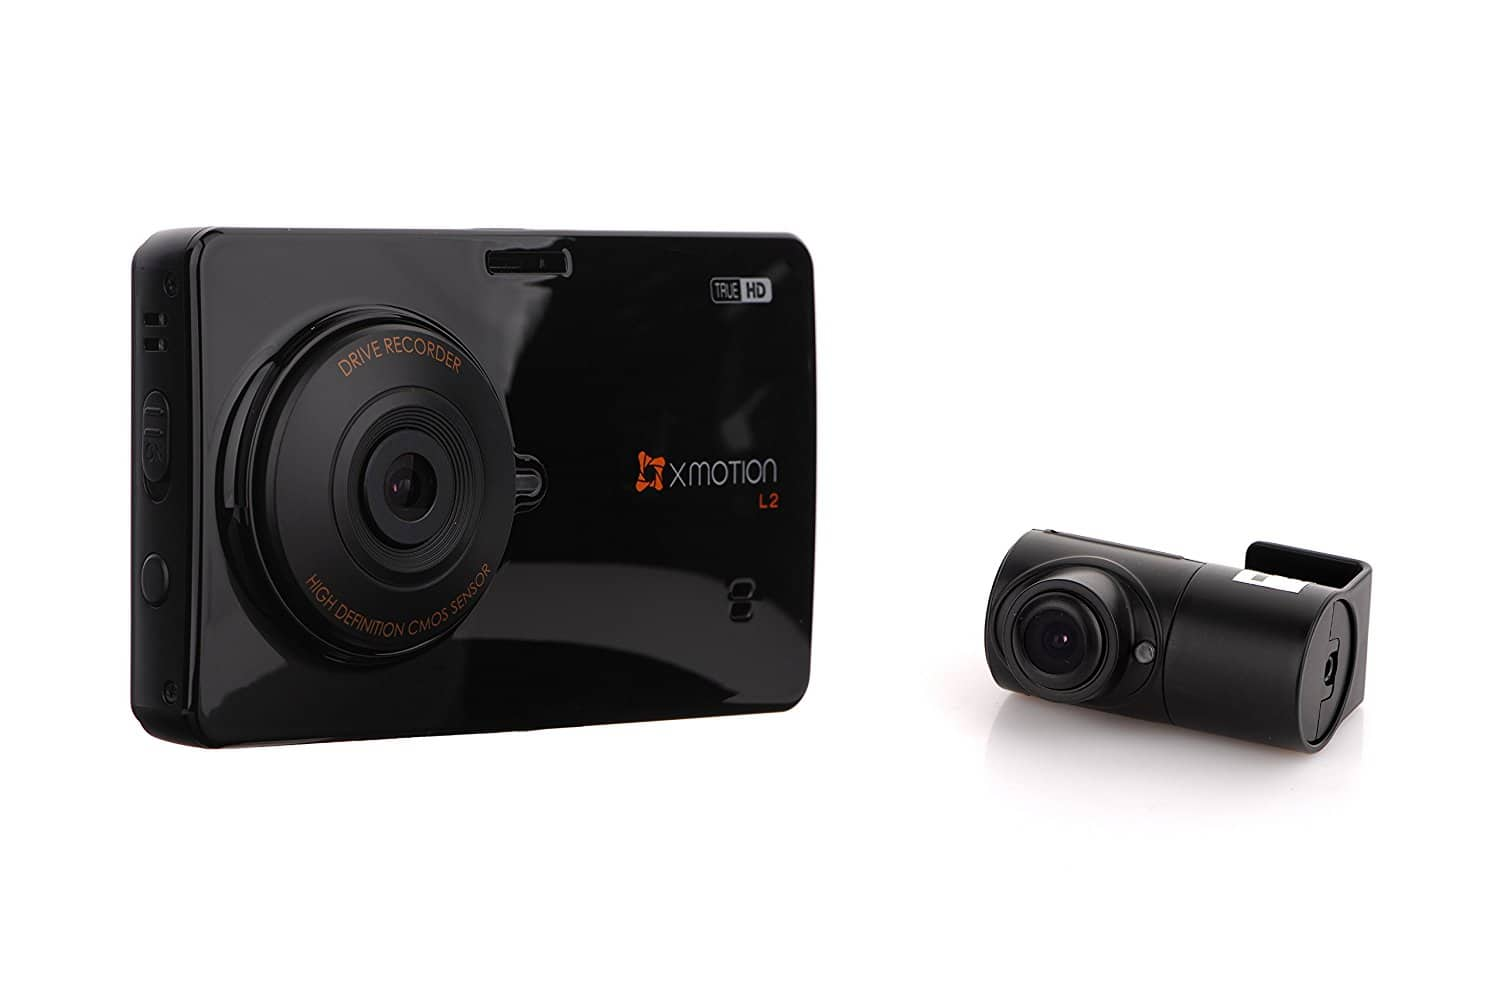 XMOTION L2 Front and Rear 2 Channel Dashcam $125.99